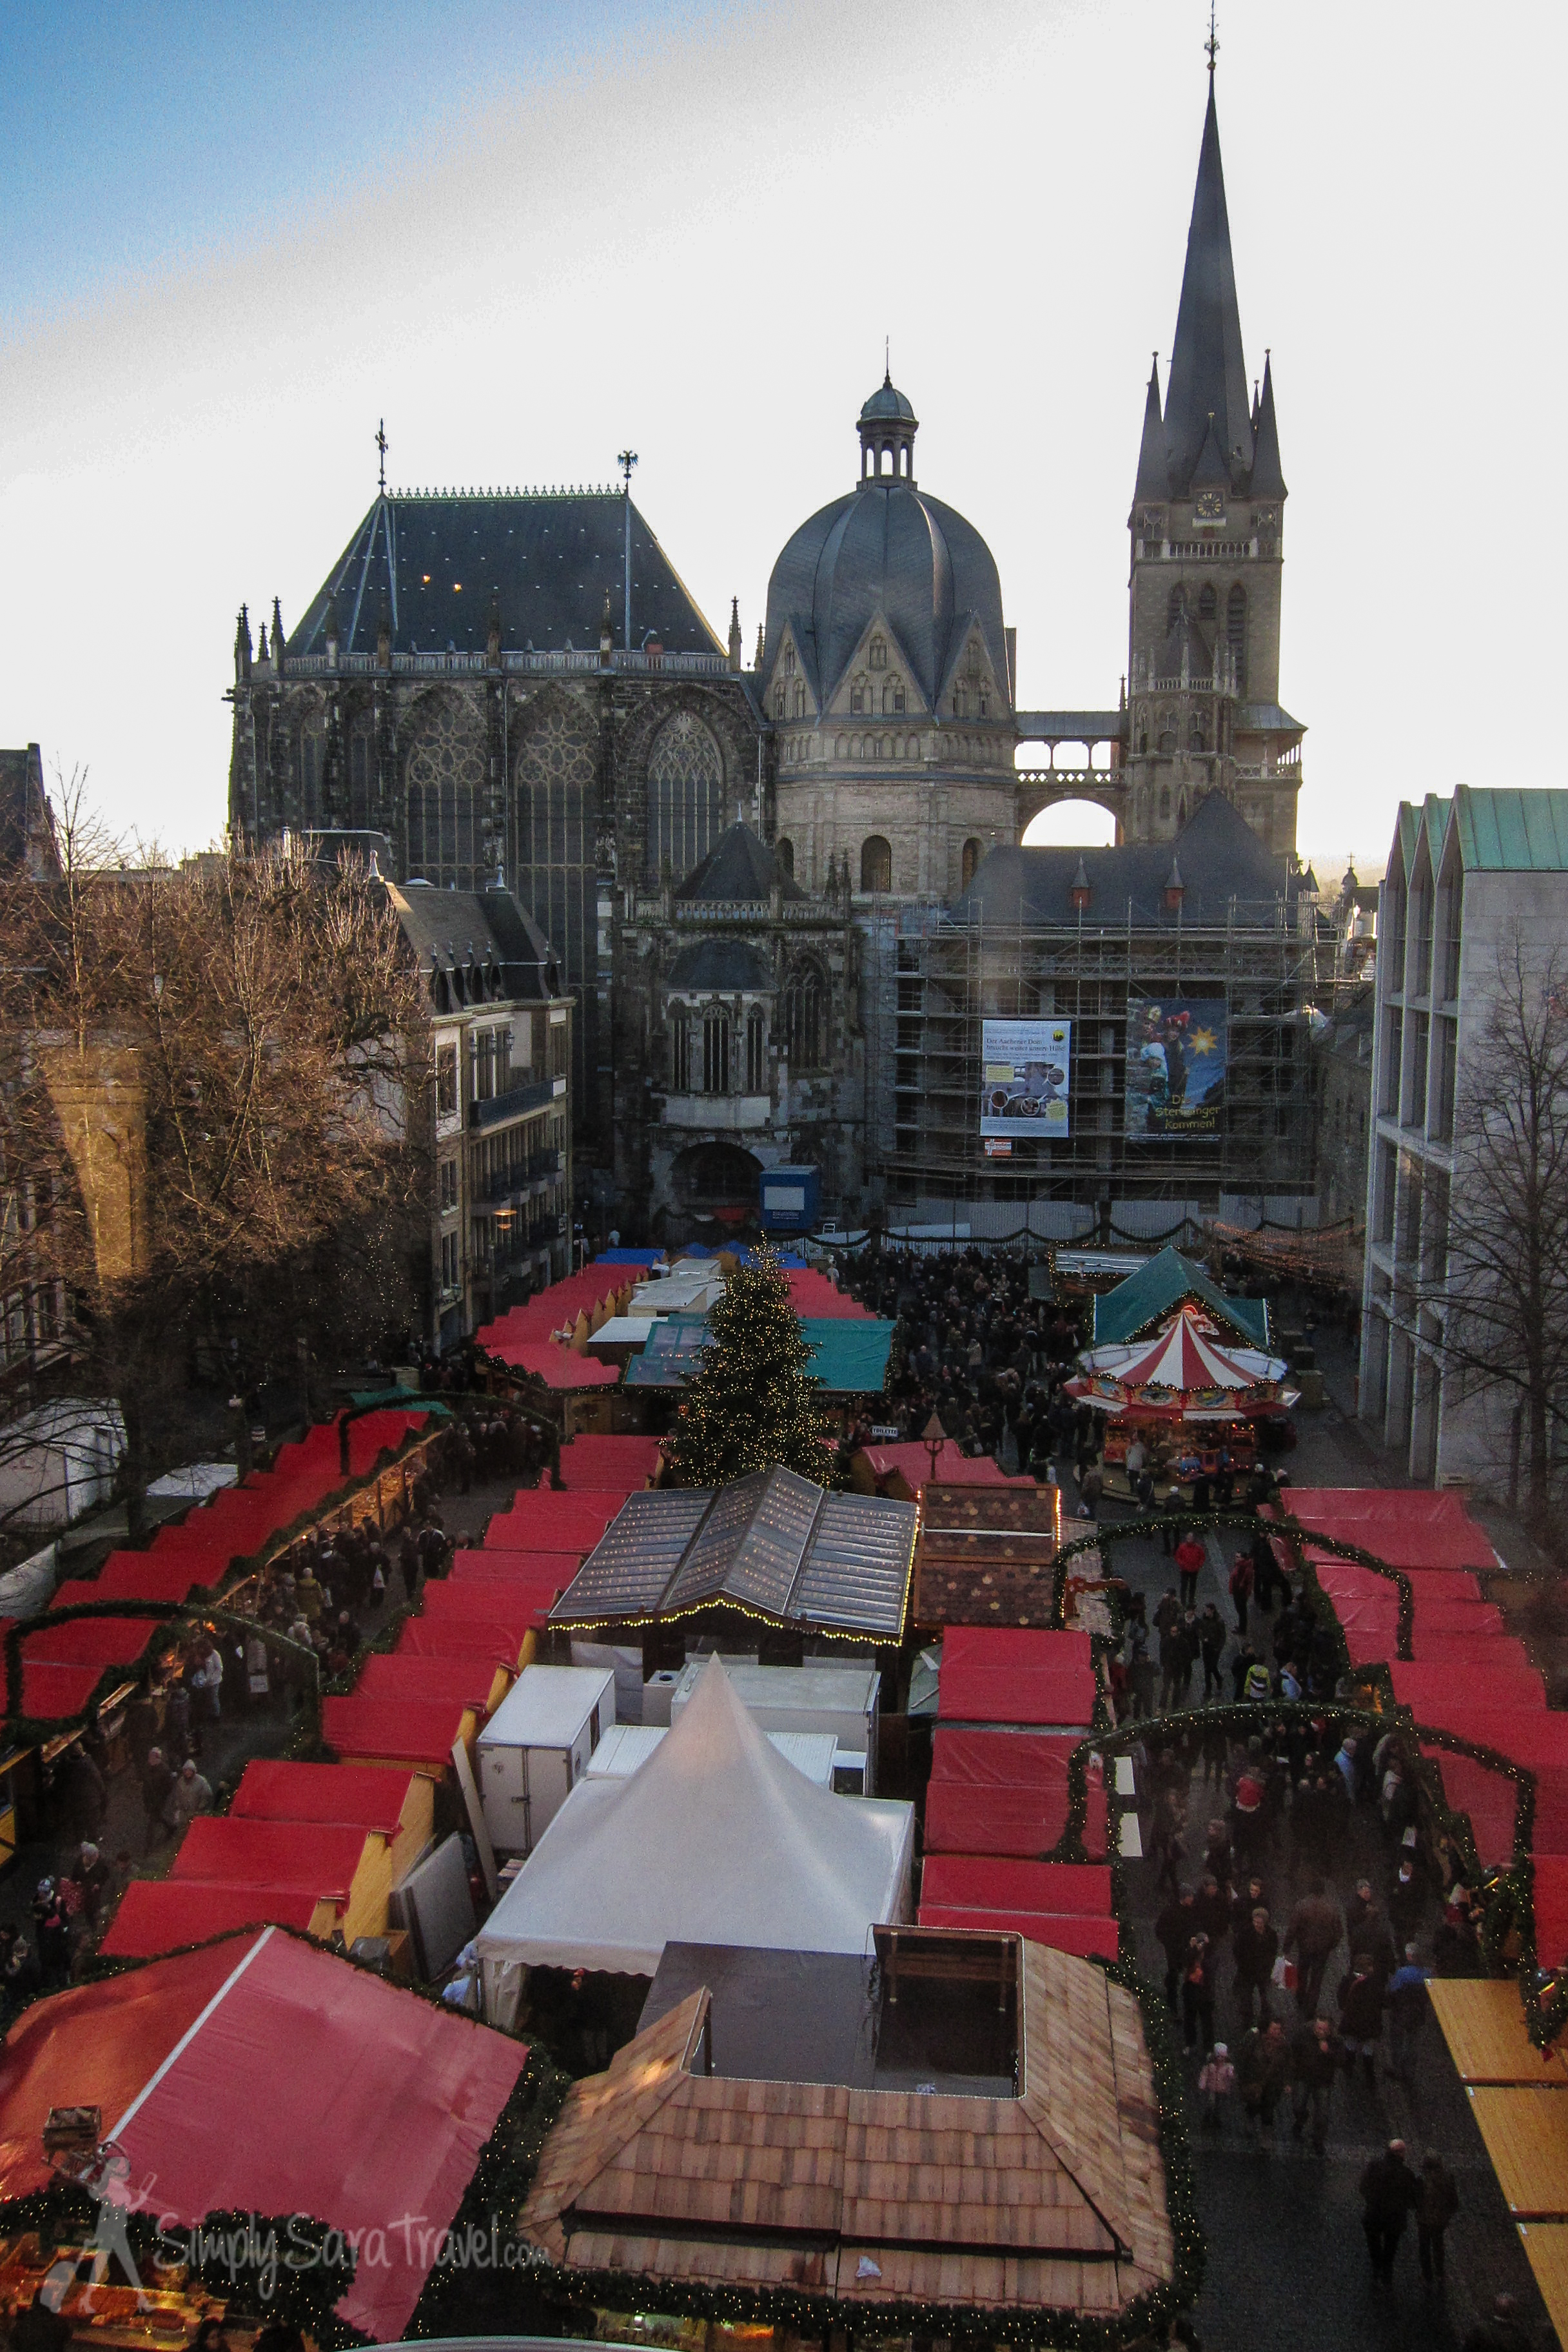 The Aachen Cathedral was built byEmperor Charlemagne and houses histhrone. A definitehighlight of the town!